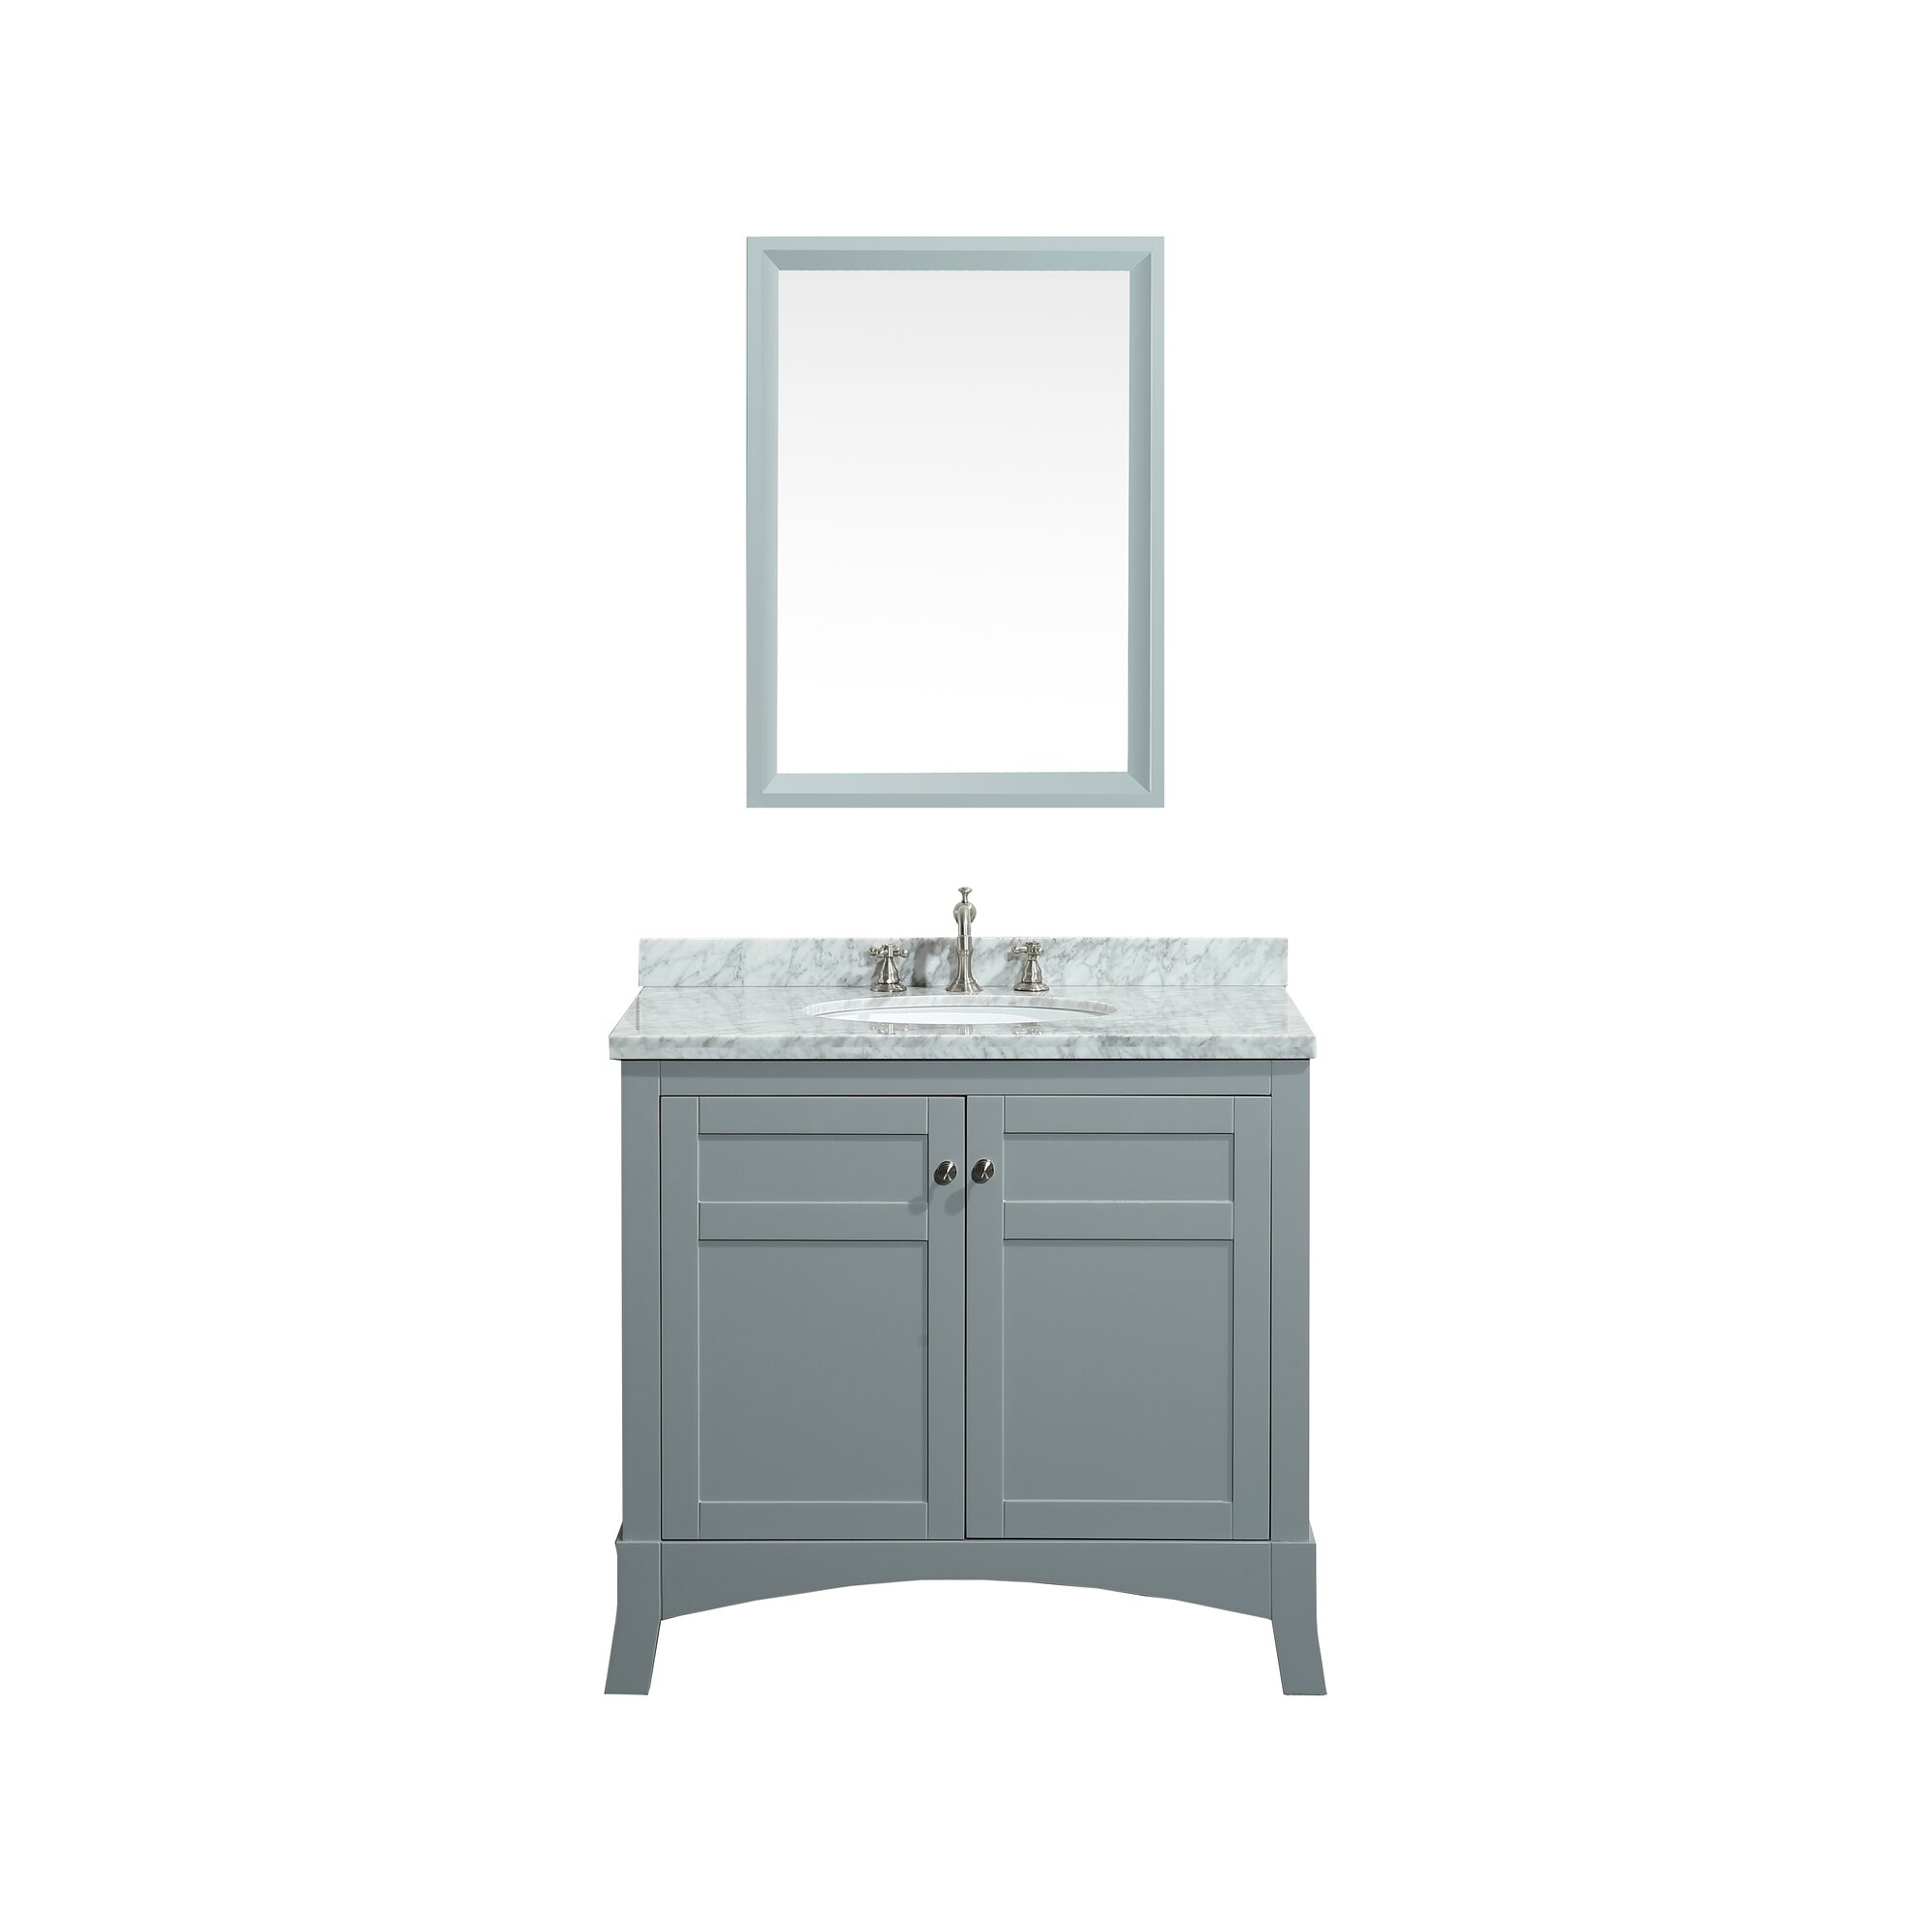 Definition Of Vanity Light : Define Bathroom Vanity - 72 Inch White Finish Bathroom Vanity Marble Top Set, Bathroom Vanities ...